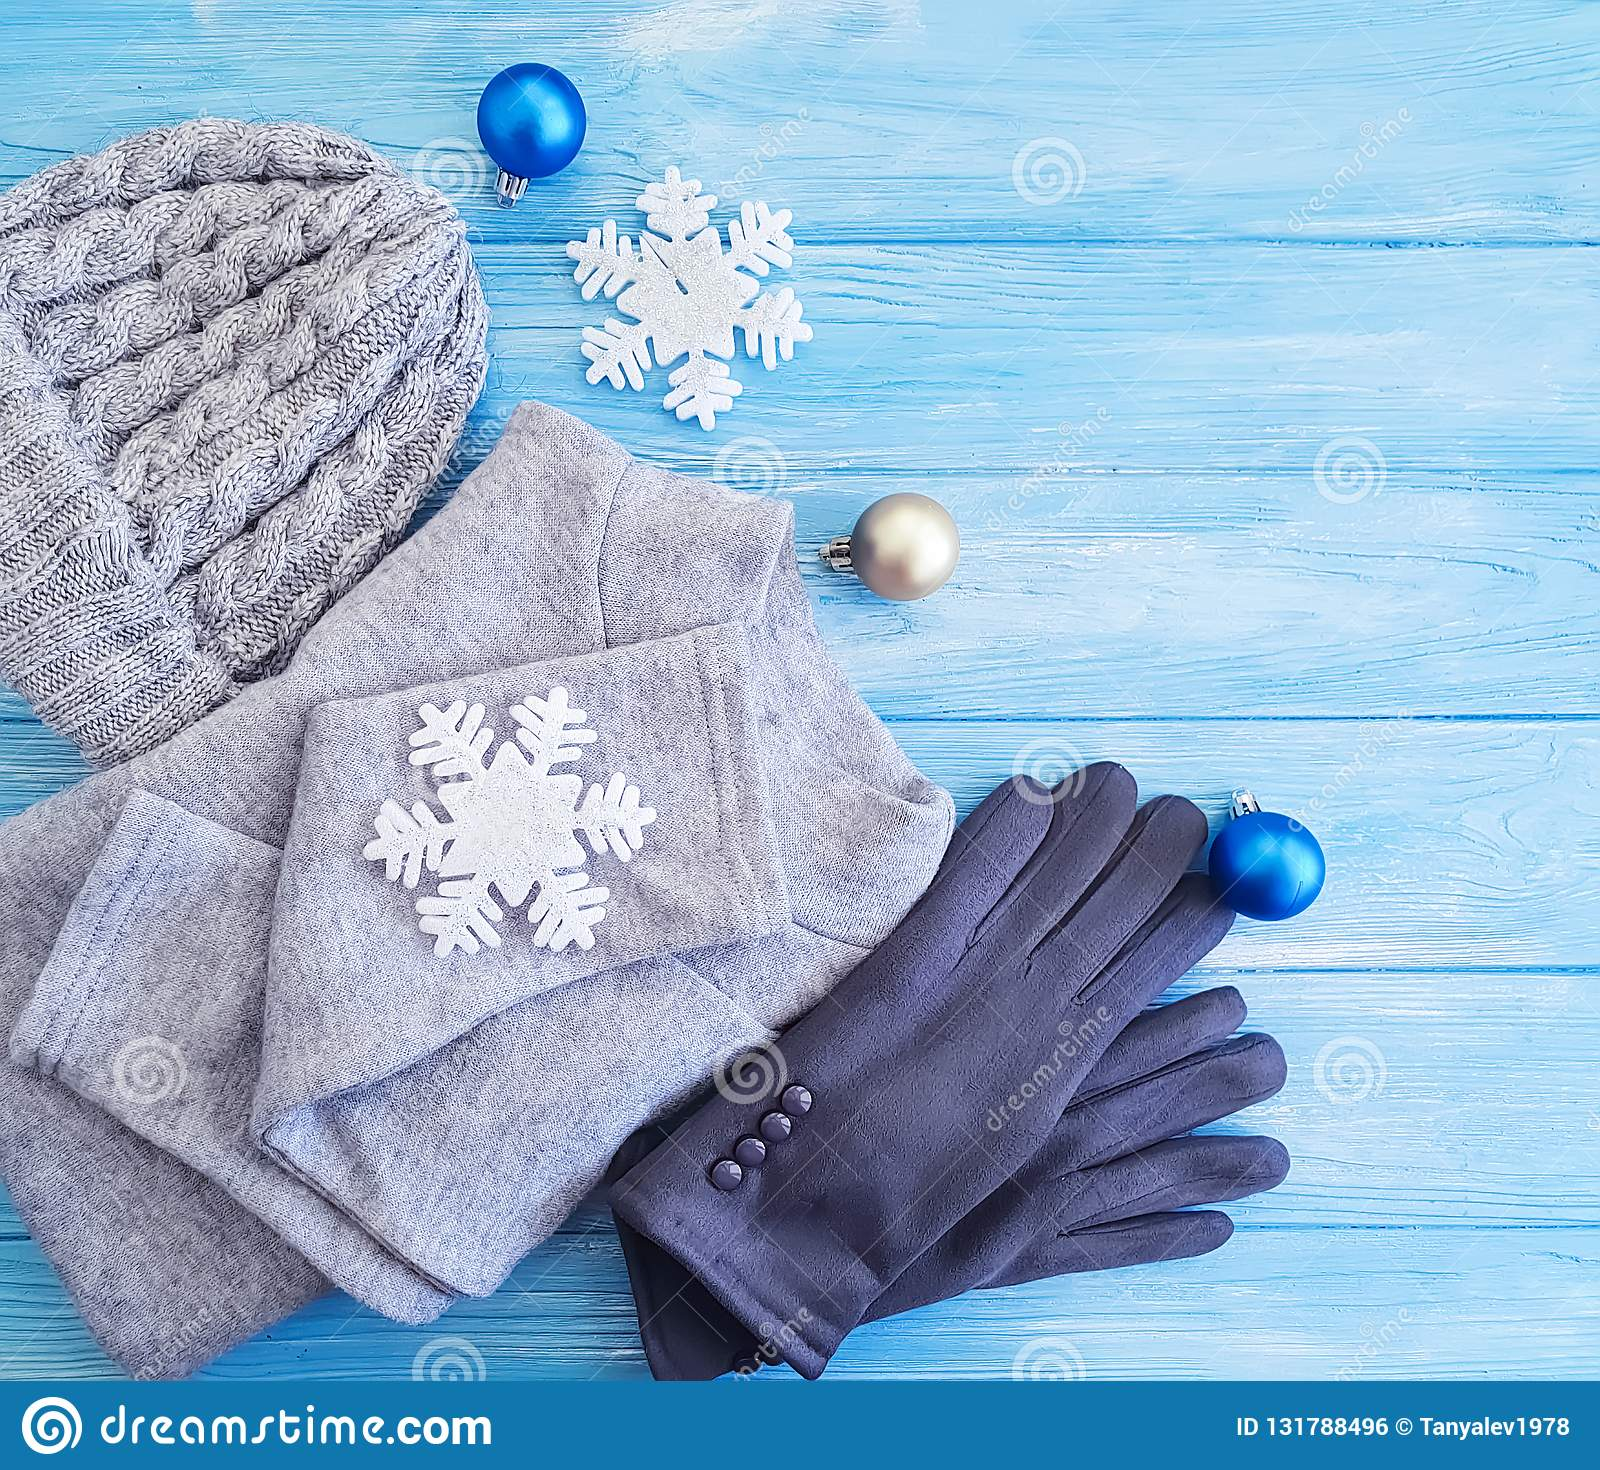 sweater gloves hat cold toy decor christmas new year a background